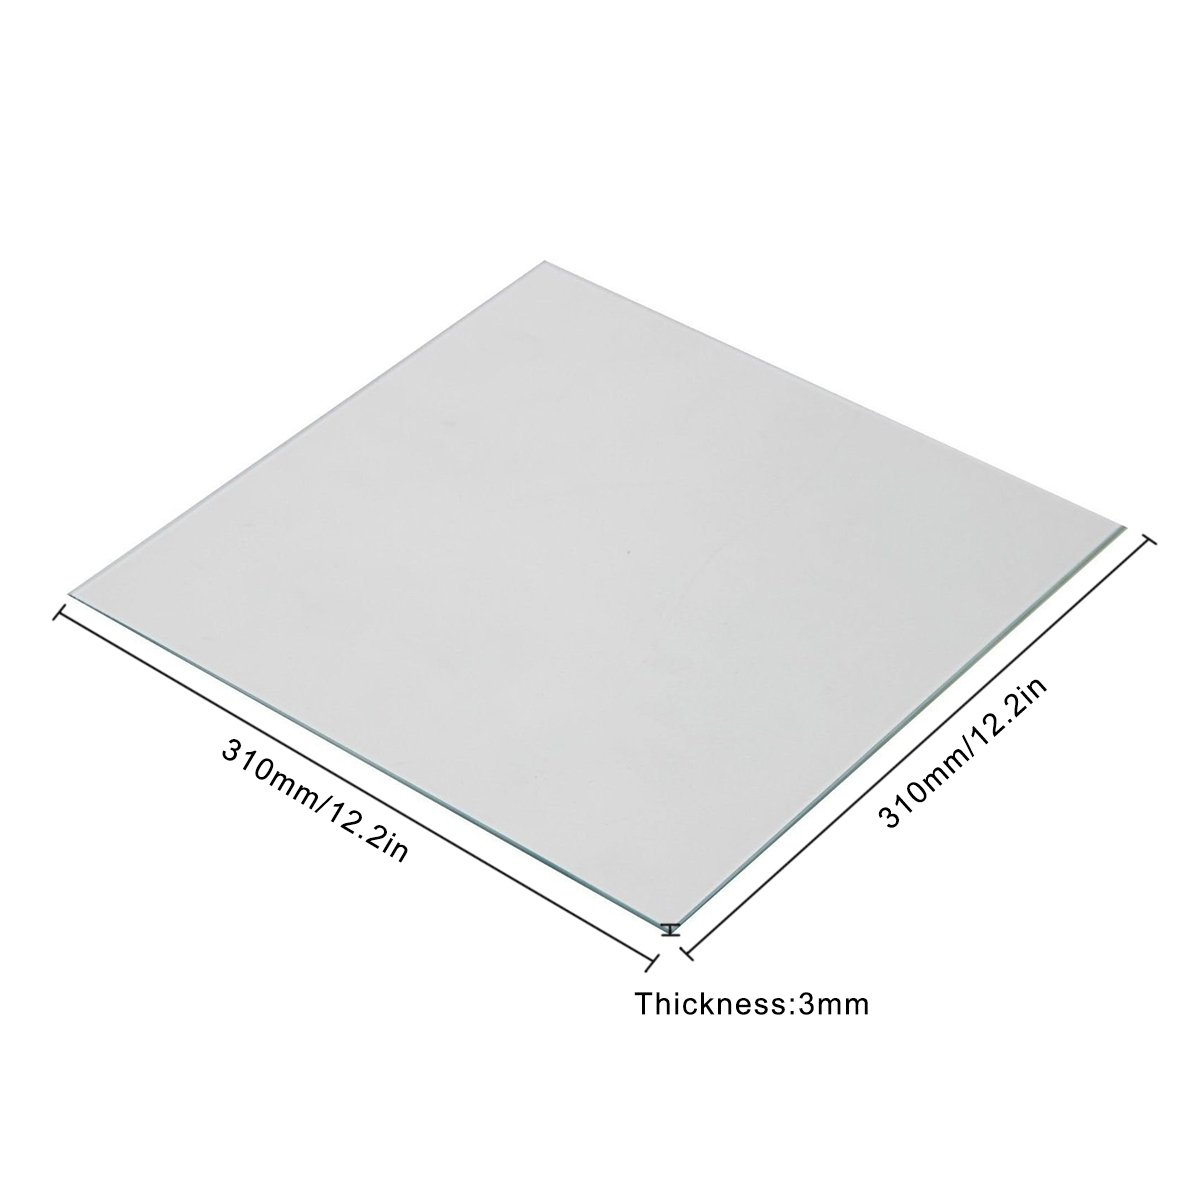 310mm x 310mm x 4mm Borosilicate Glass Build Plate 310 x 310 x 4mm with Polished Edges for 3D Printer CR-10 CR-10S S3 CR-X Heatbed